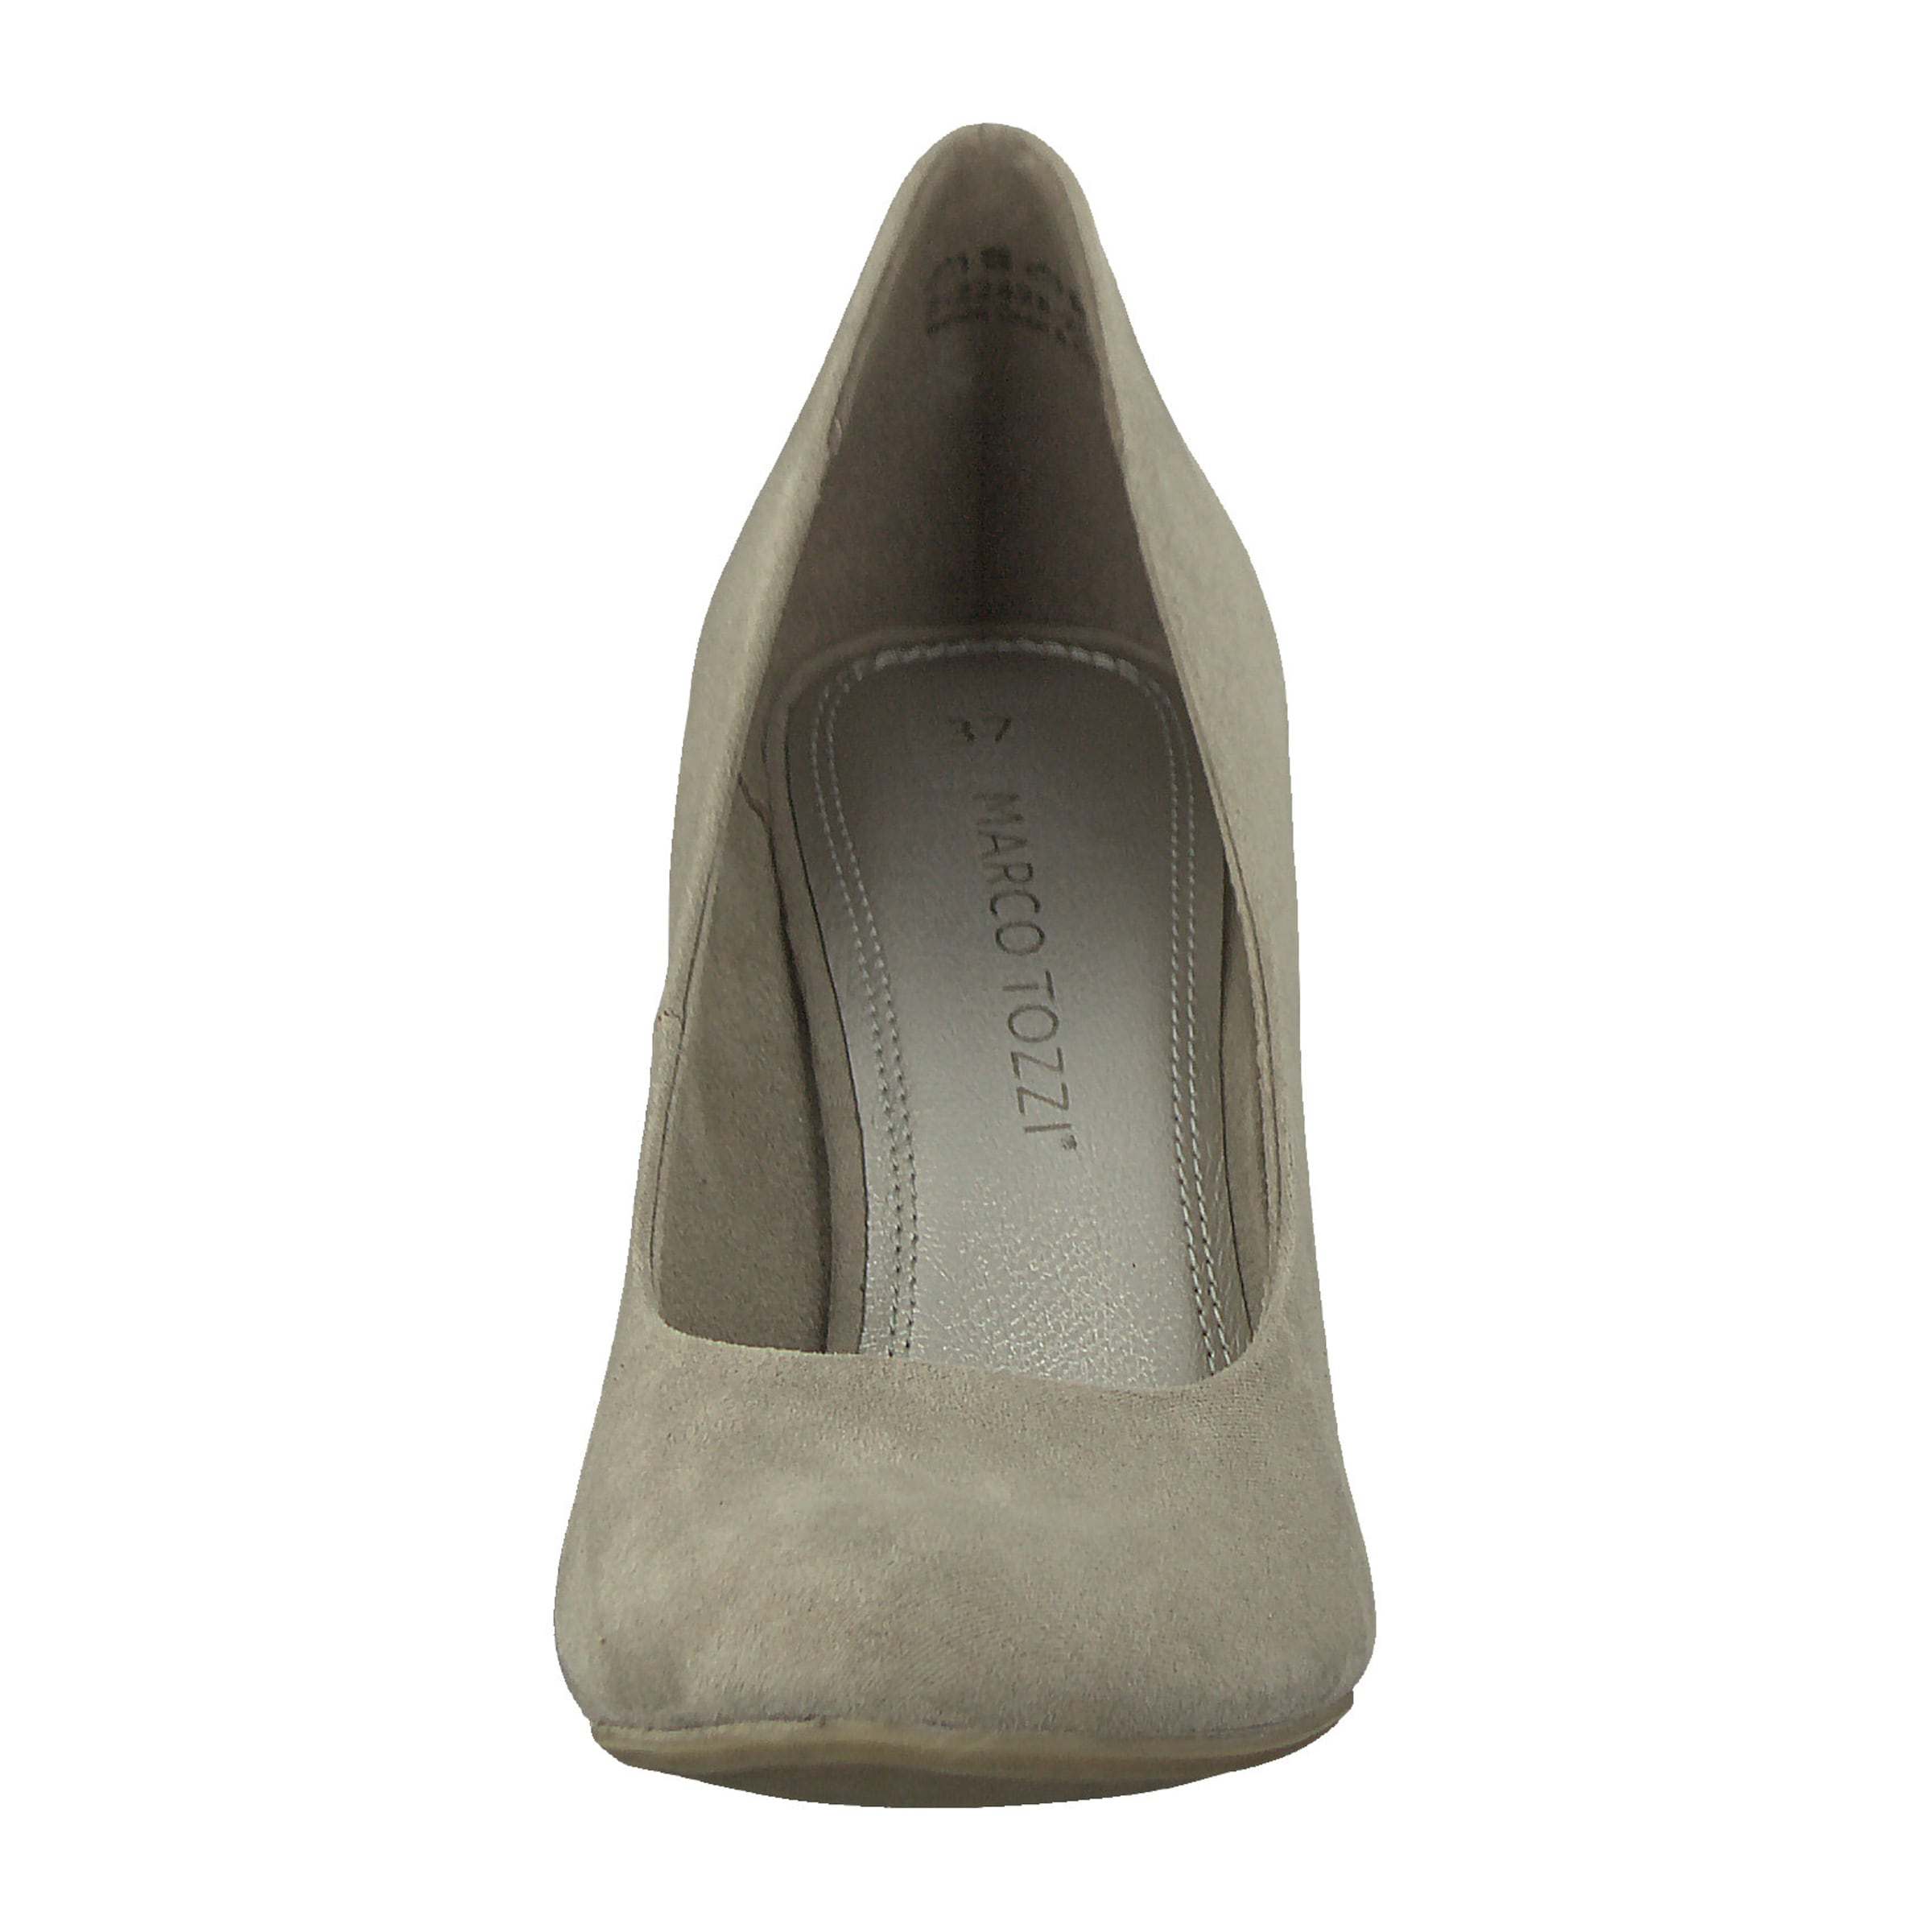 In Grau Tozzi Marco Pumps In Tozzi Marco Marco Grau Pumps rexodCB